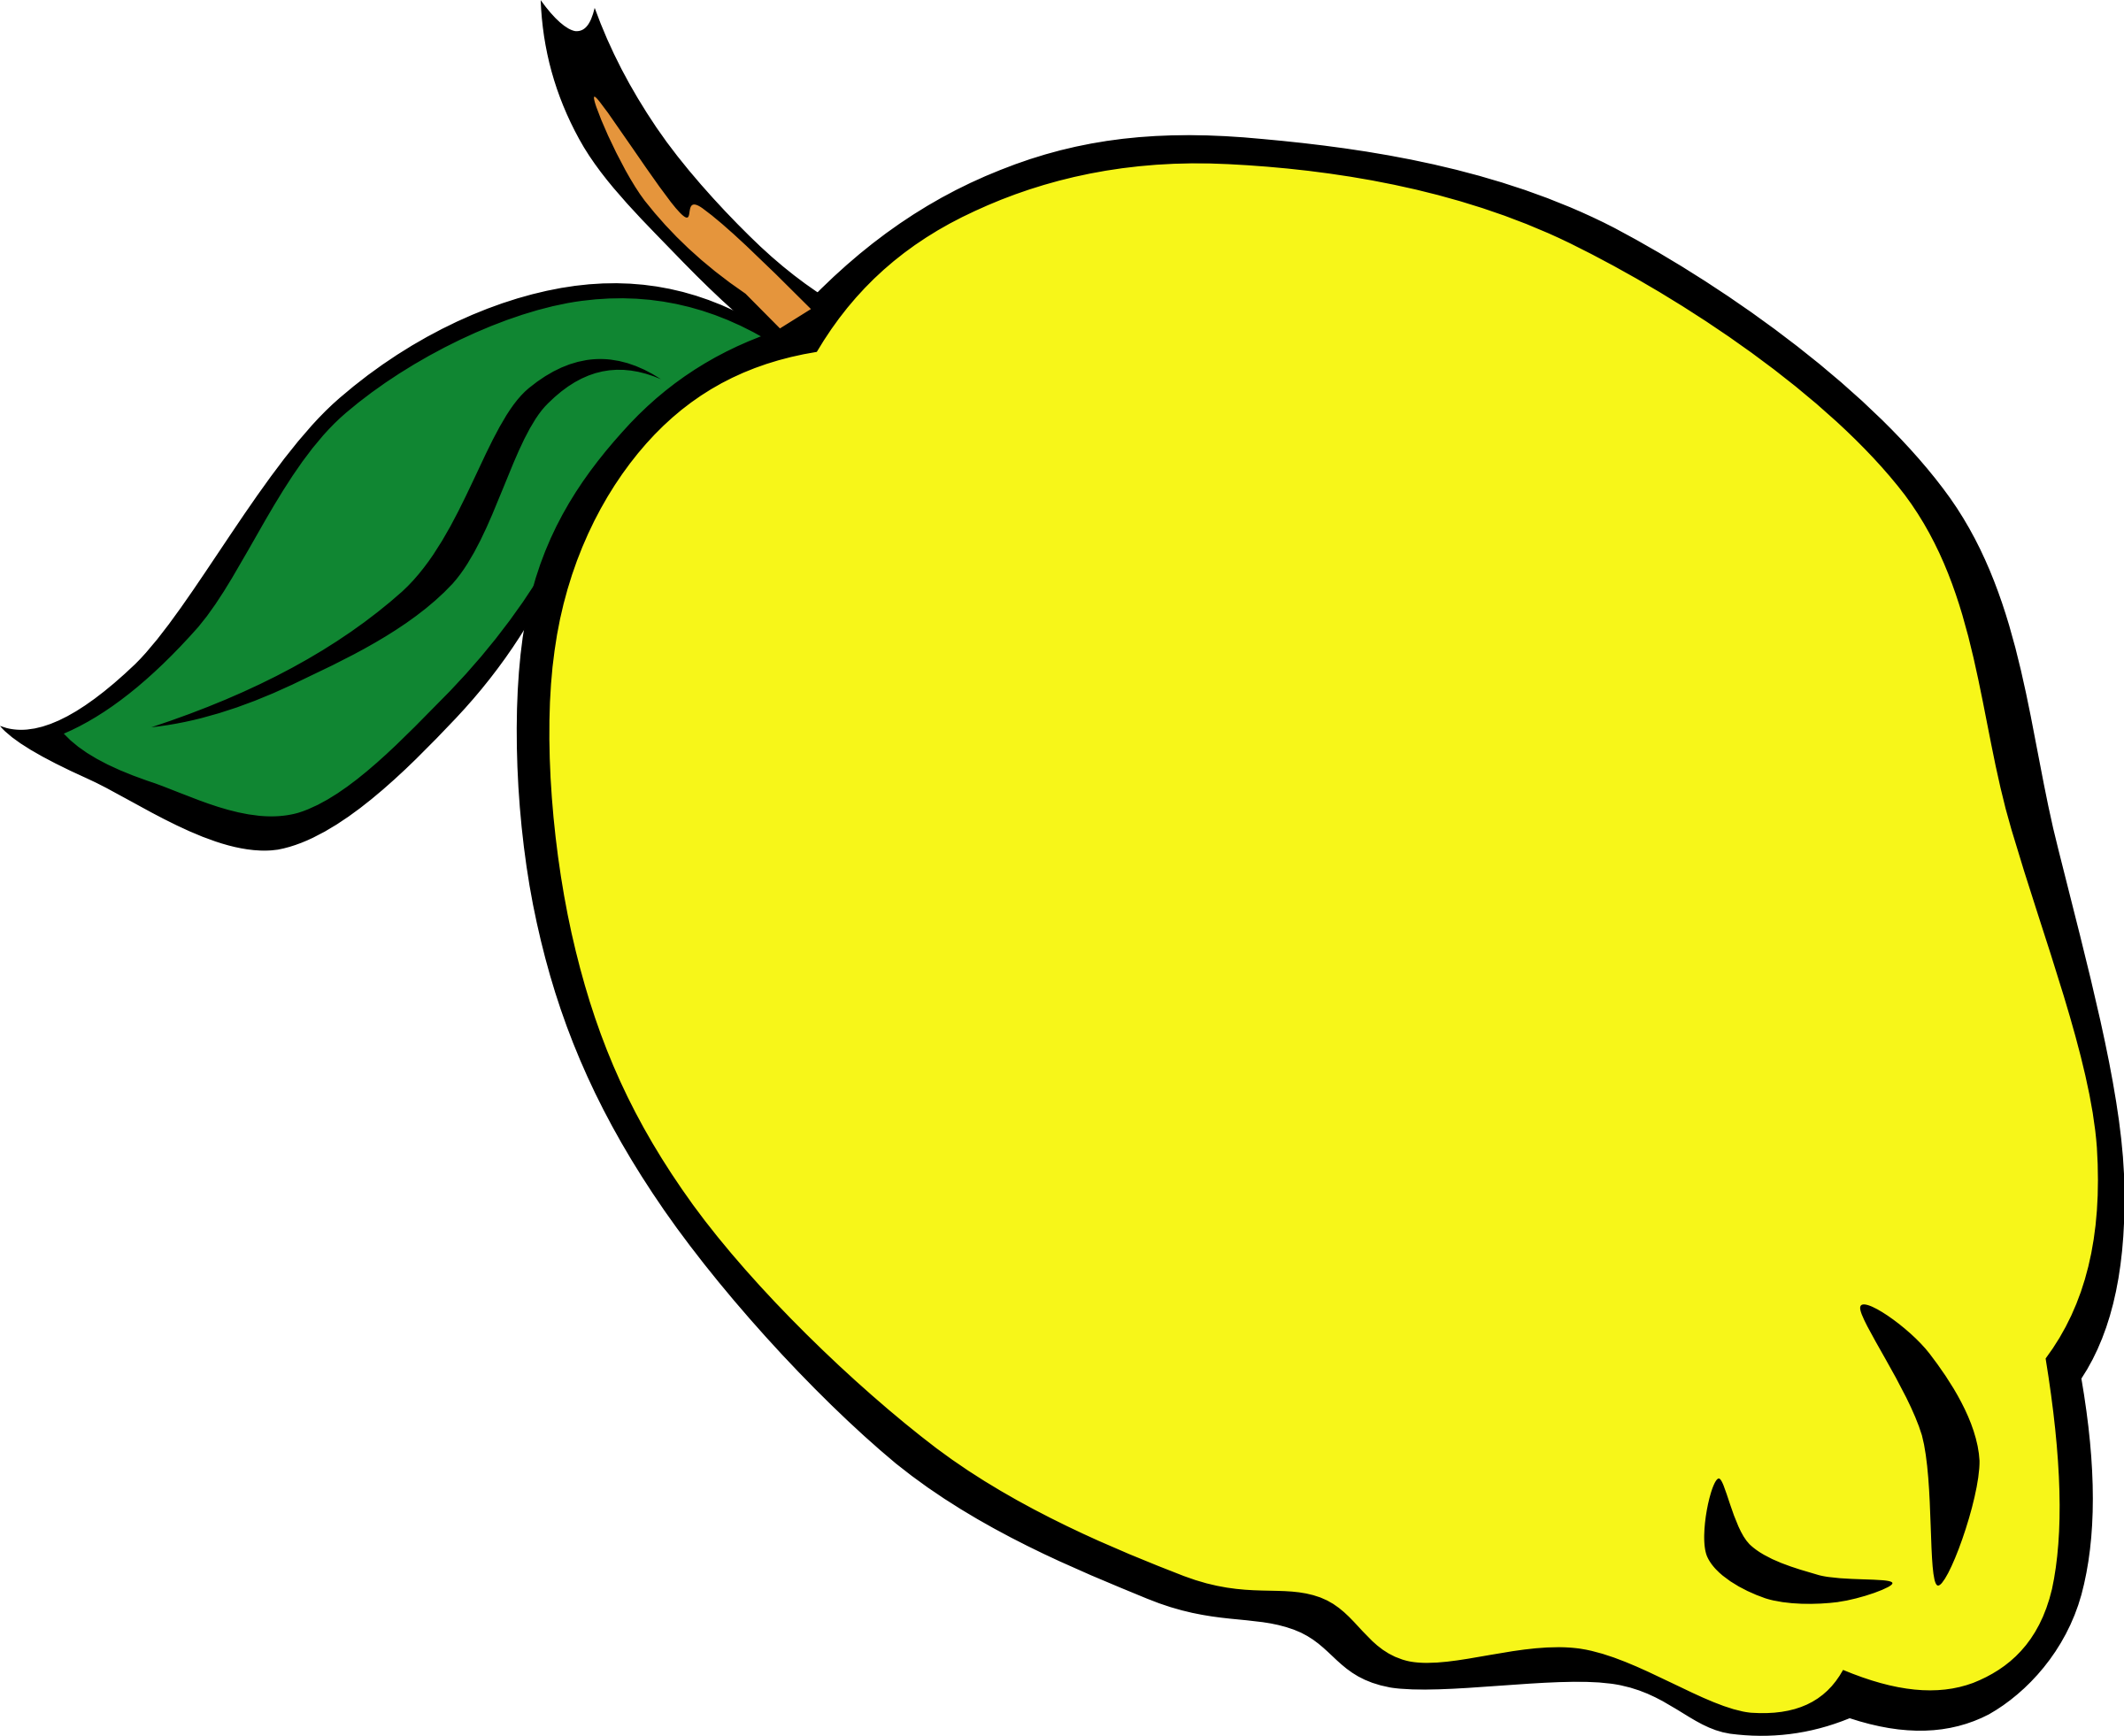 Pear clipart 3 fruit. Lemon yellow pencil and